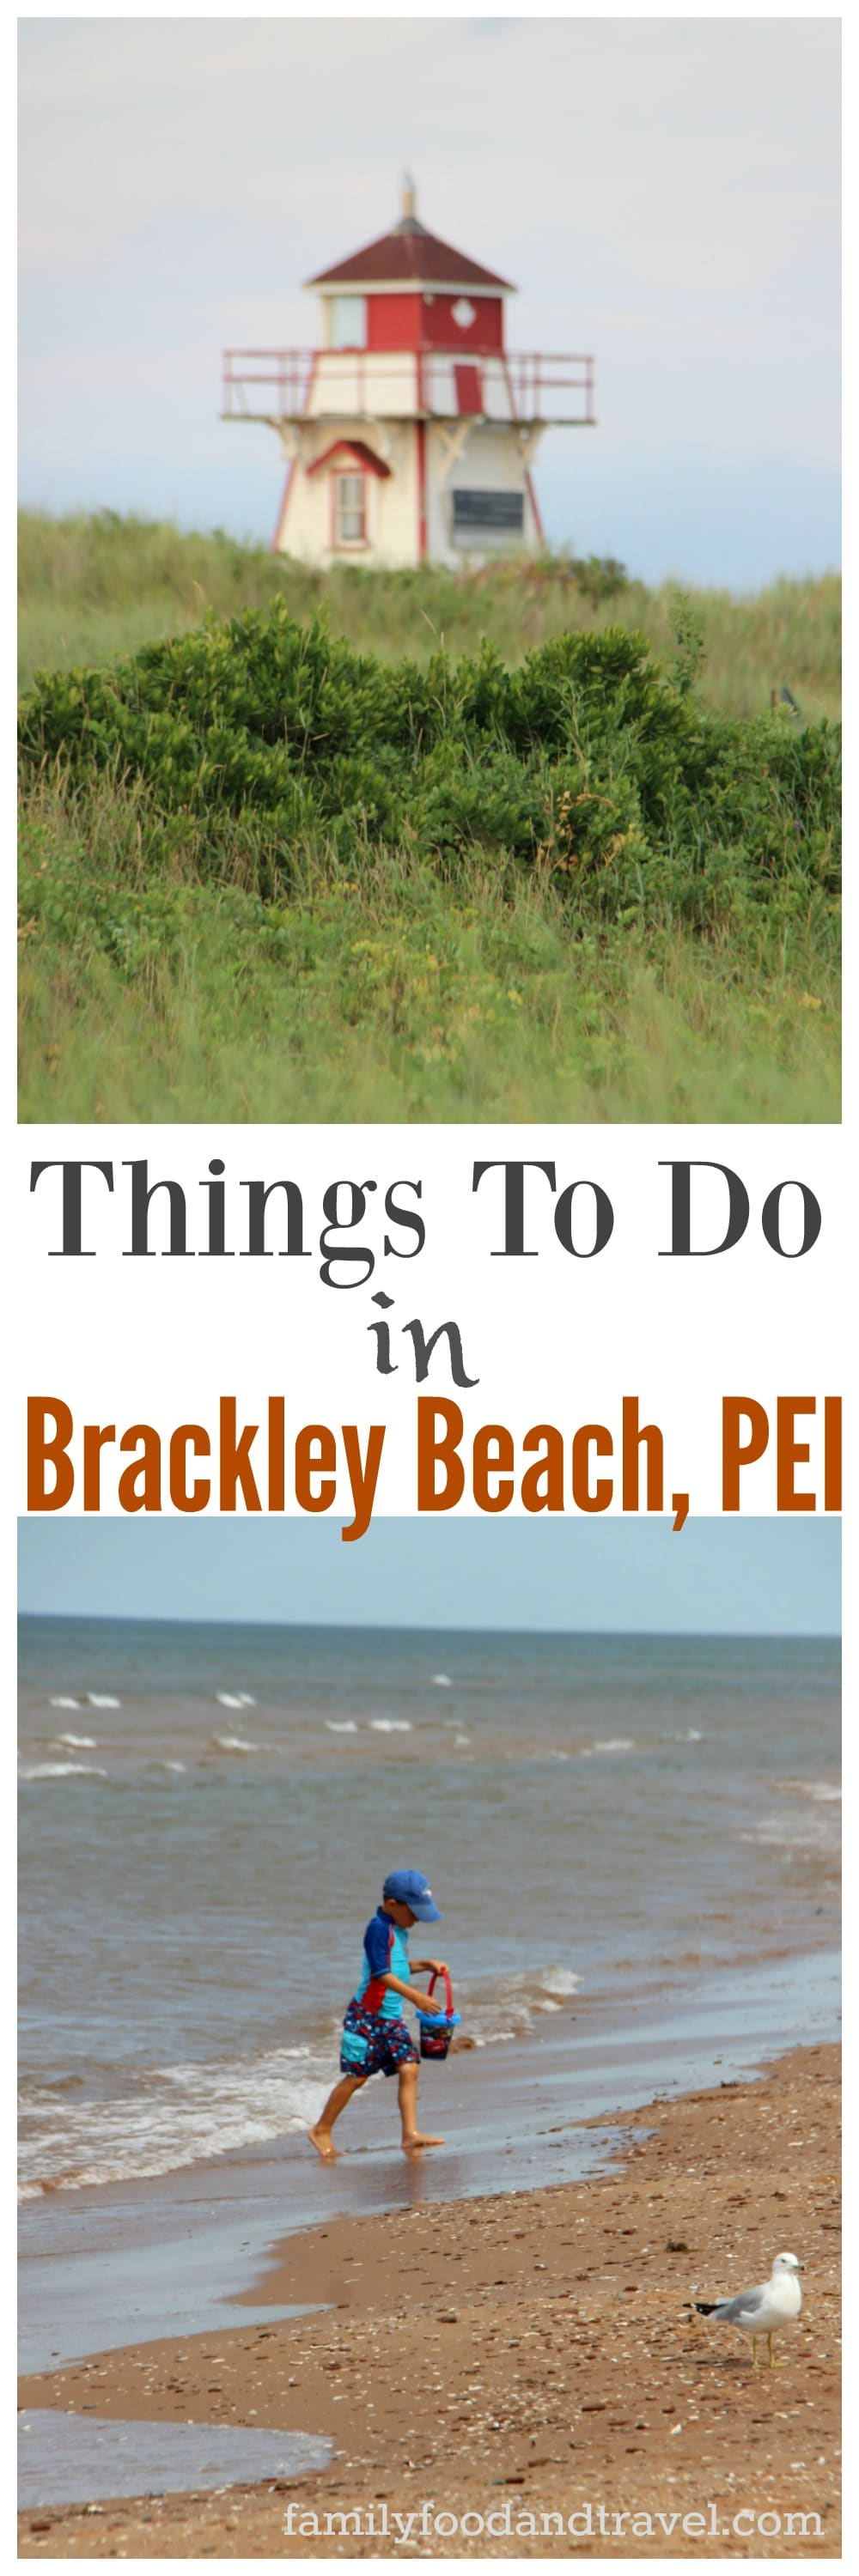 Things to To in Brackley Beach PEI